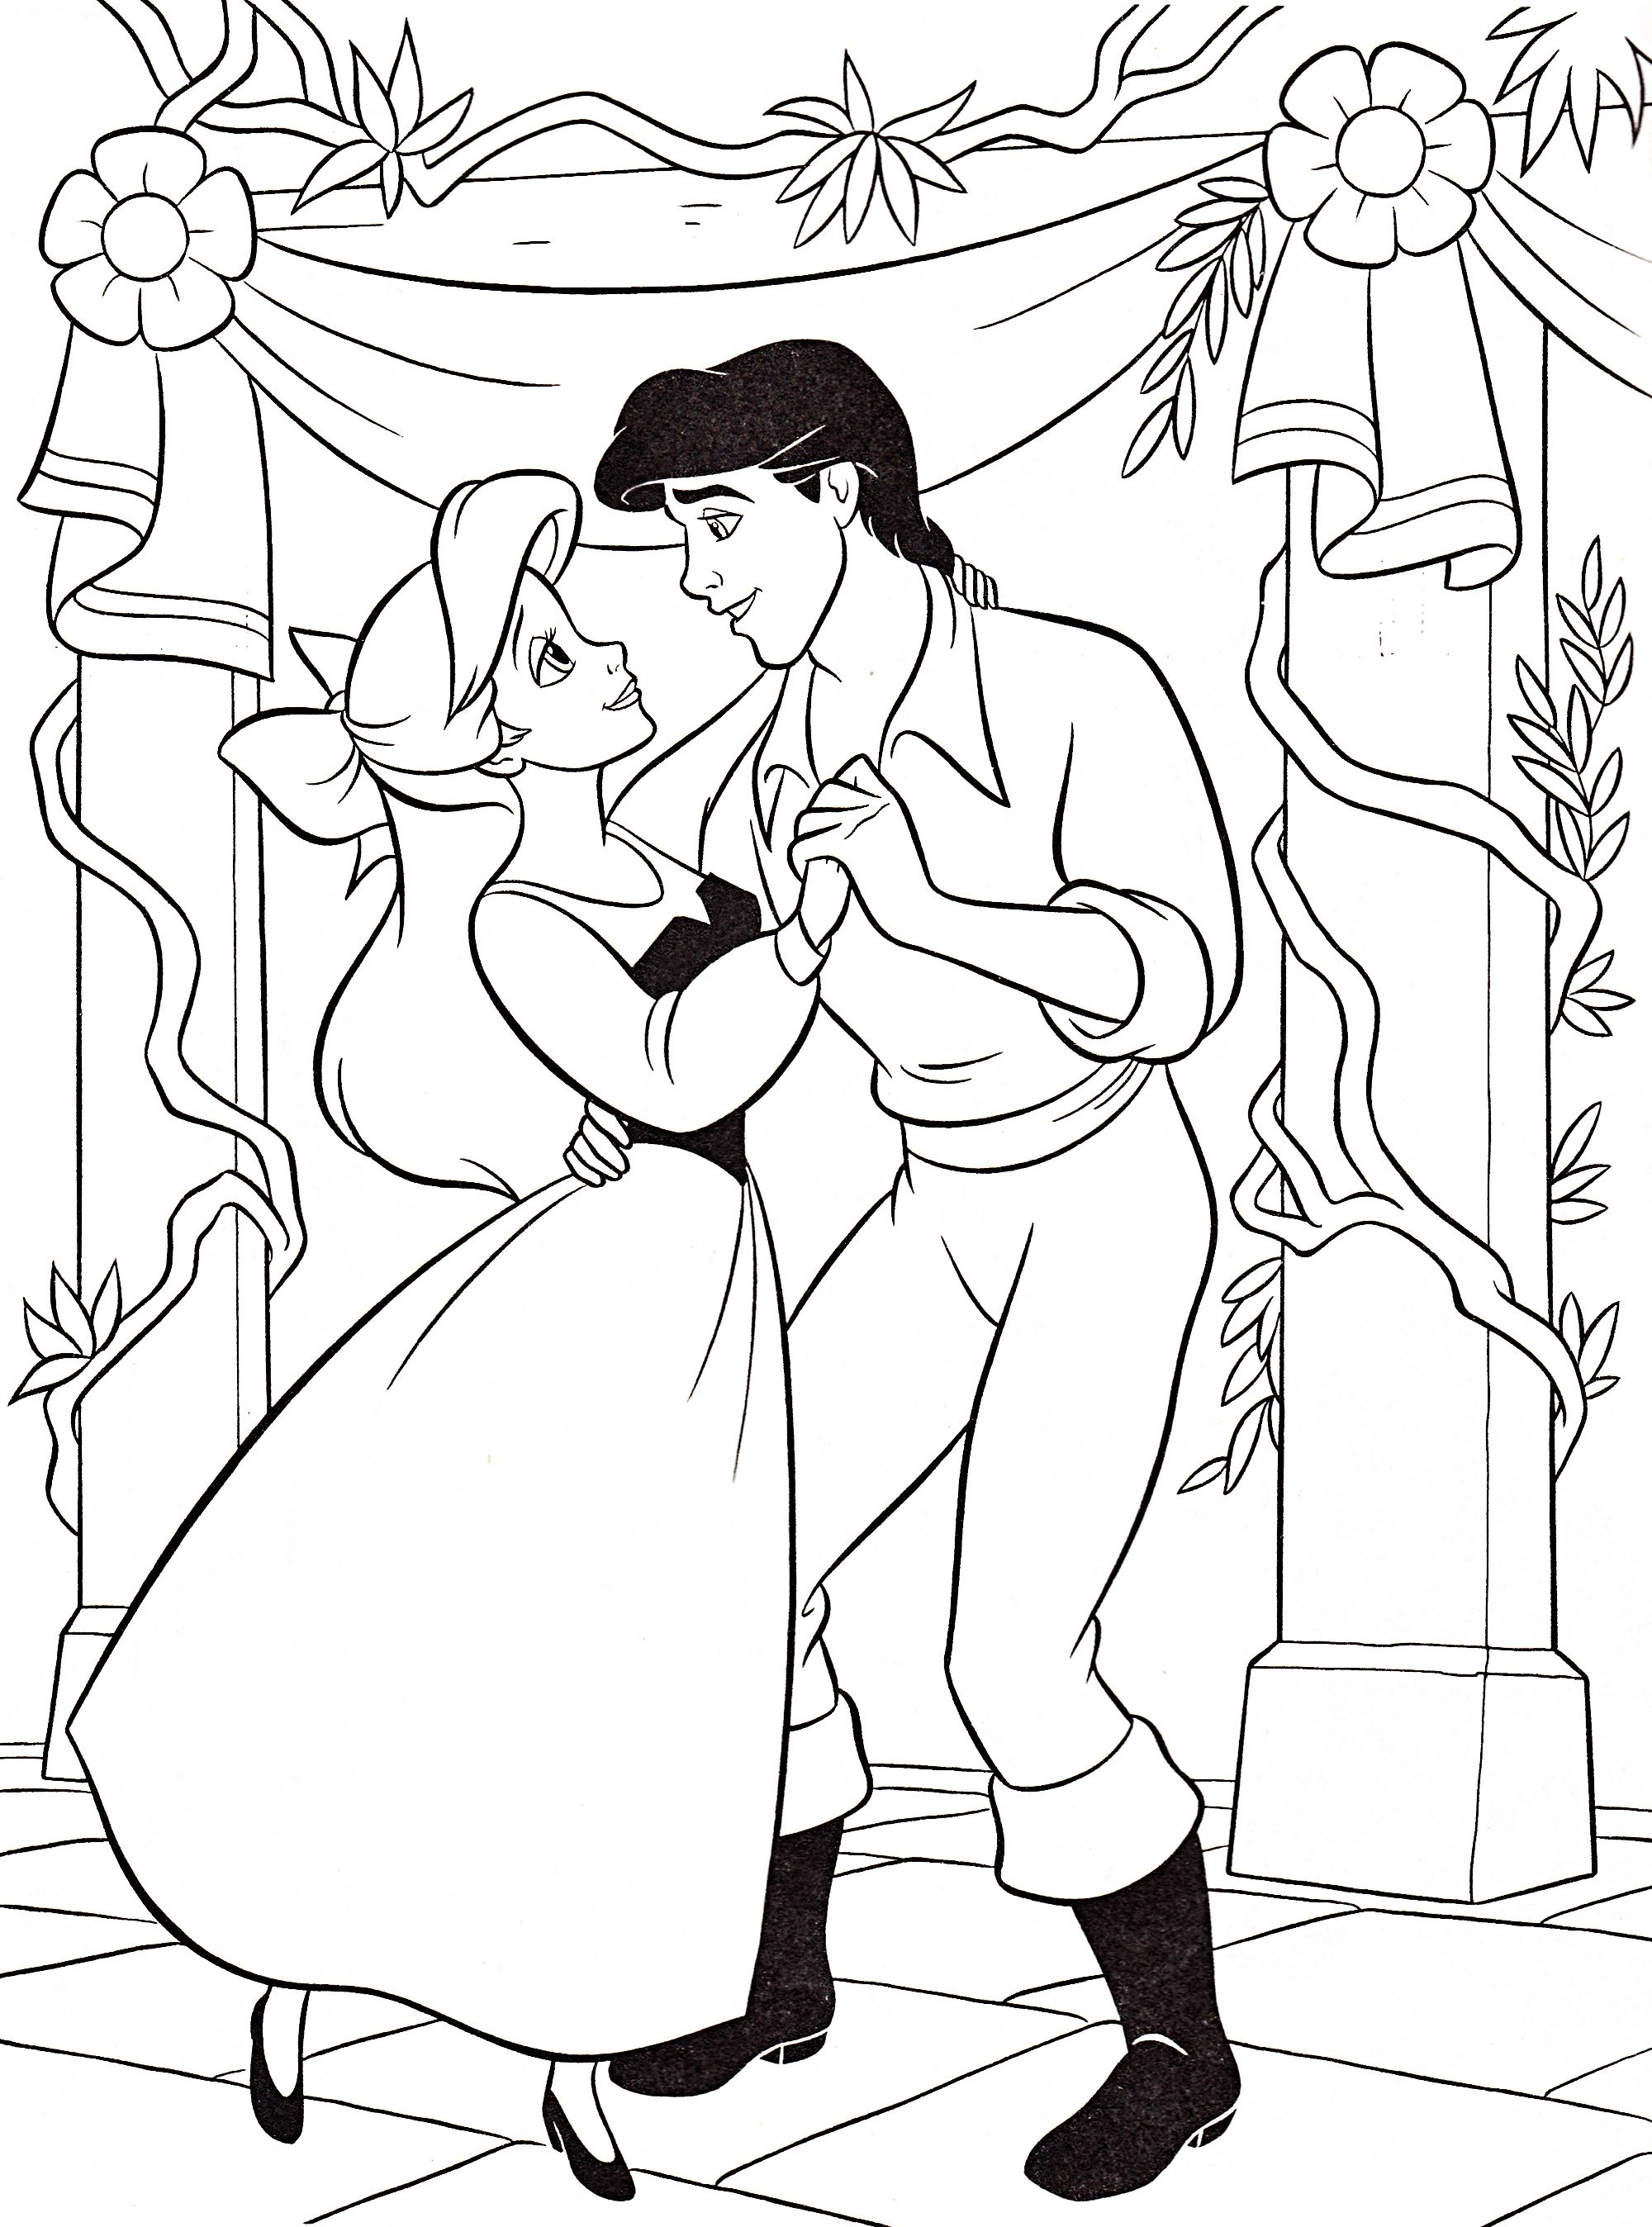 Disney princess coloring book for adults - Disney Tangled Coloring Pages Printable Walt Disney Characters Walt Disney Coloring Pages Princess Ariel